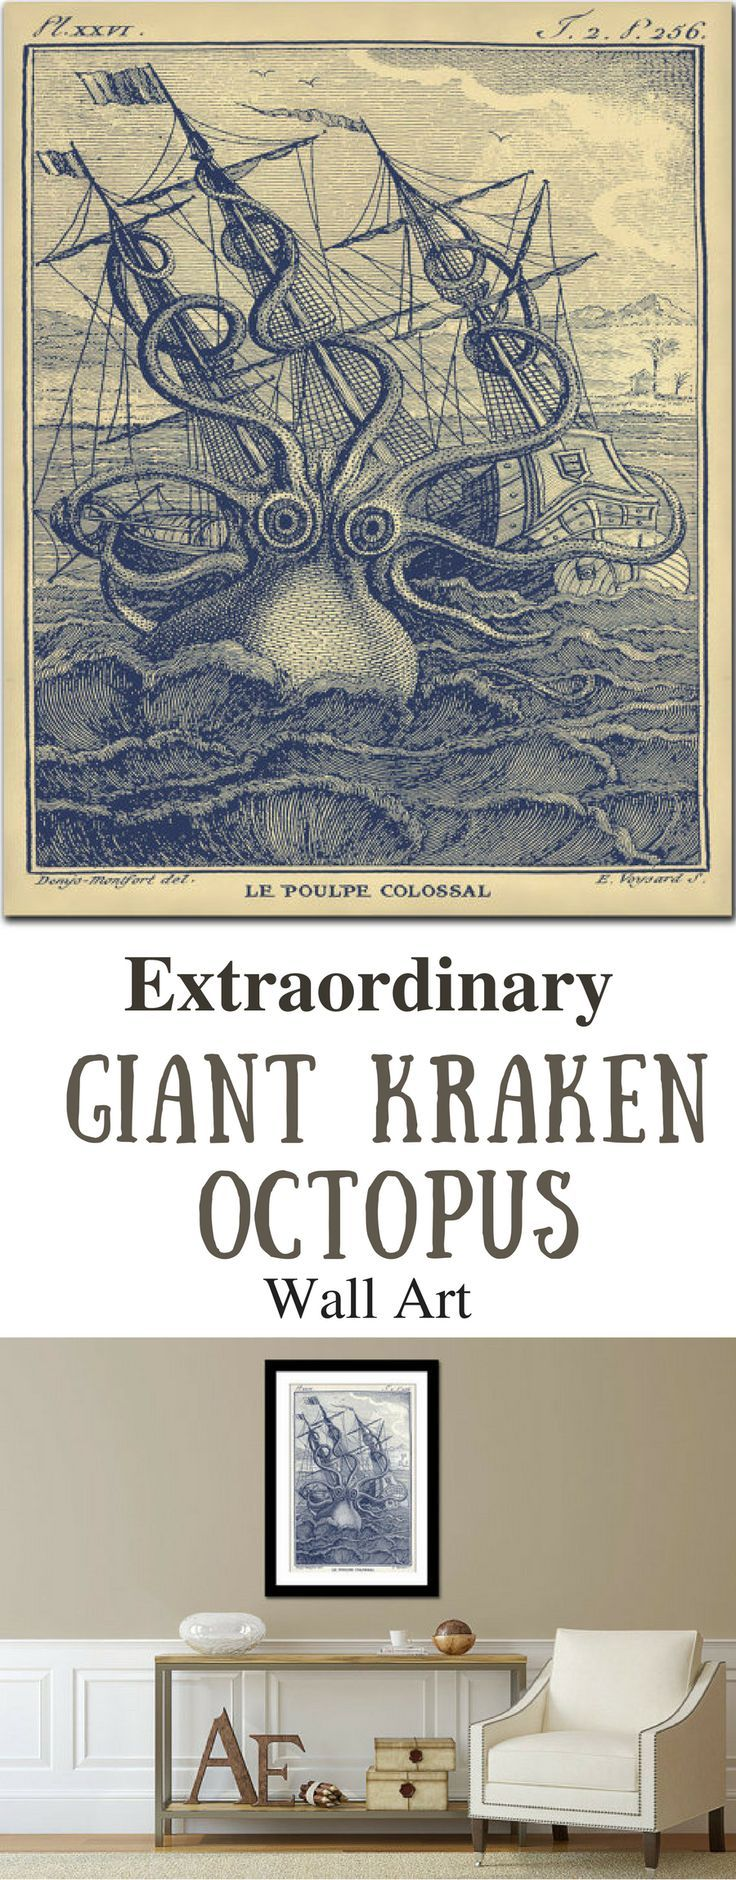 Octopus Print, Kraken Sea Monster Vintage Octopus Print in Marine Blue or in the sepia and aged parchment, 1802 Natural History Print, Octopus Poster Natural History Art Print - octopus print - steampunk -Steampunk  NNT #ad #octopus #vintage #vintagestyle #history #printdesign #seamonster #posterdesign #posterart #WallArt #walldecor #steampunk #wallhanging #steampunkart